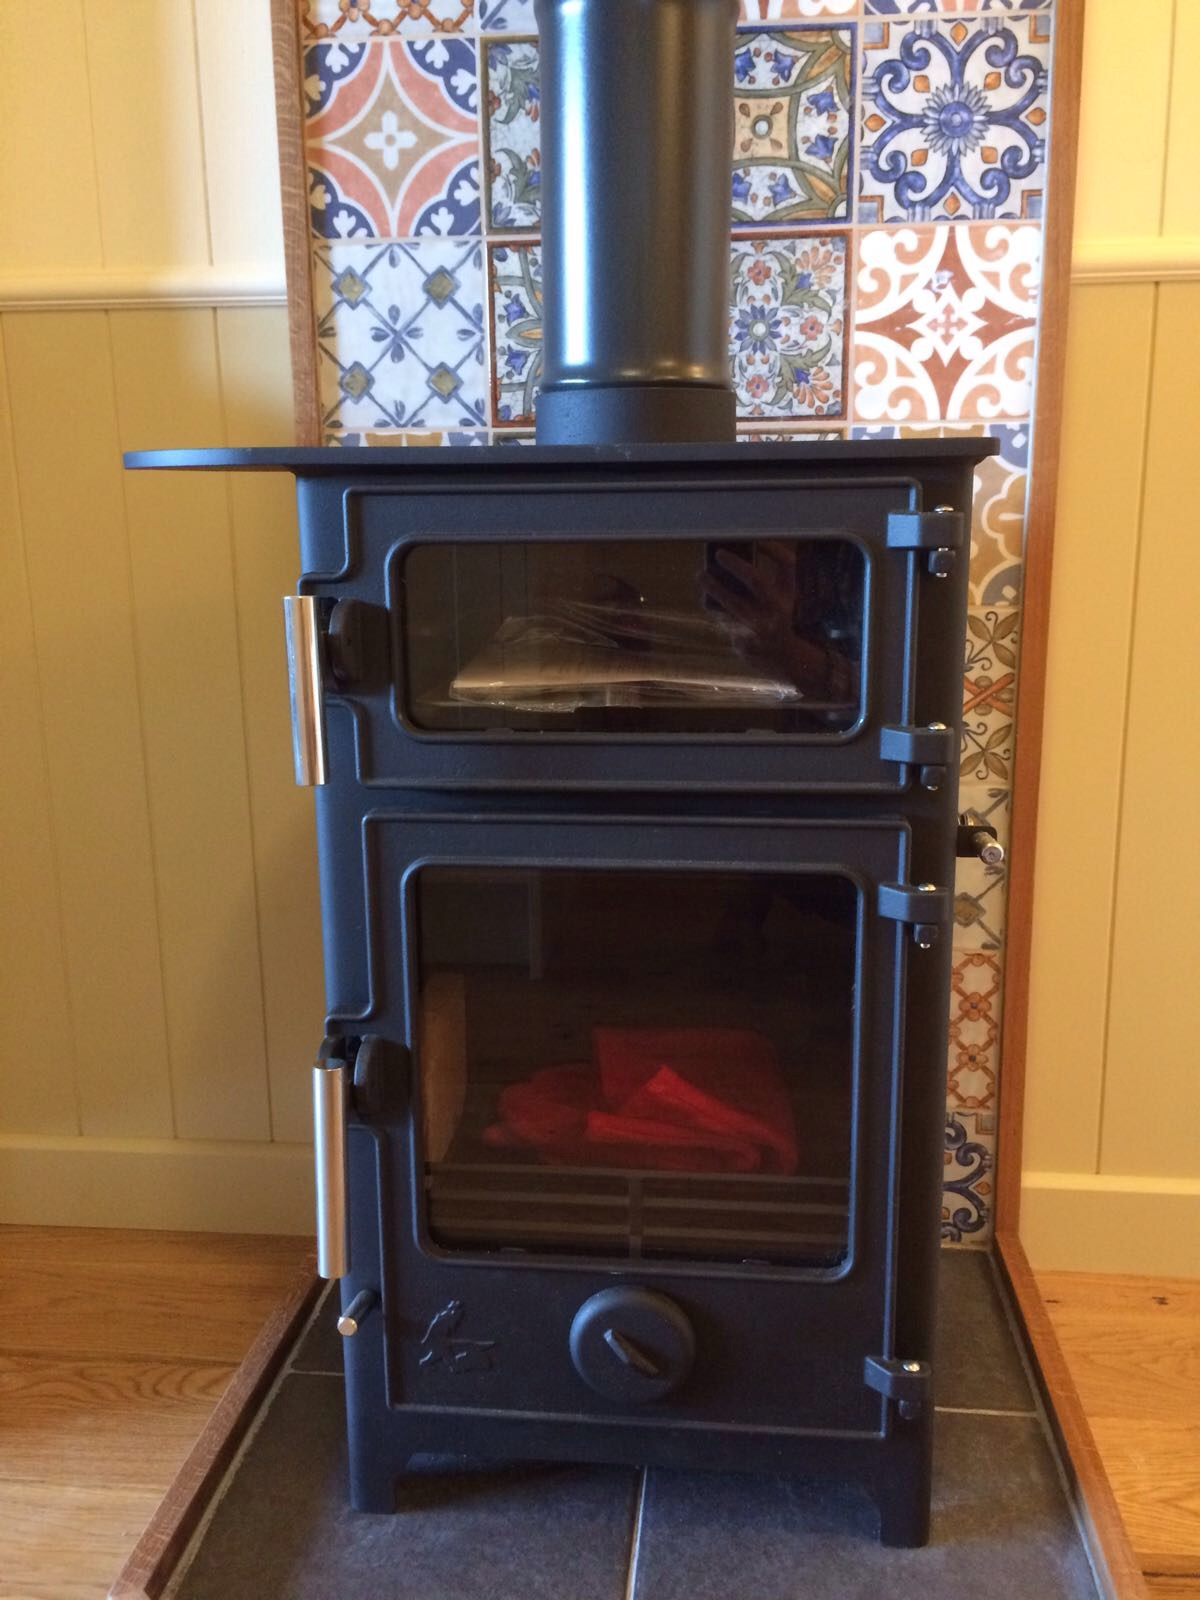 Wood burner with oven